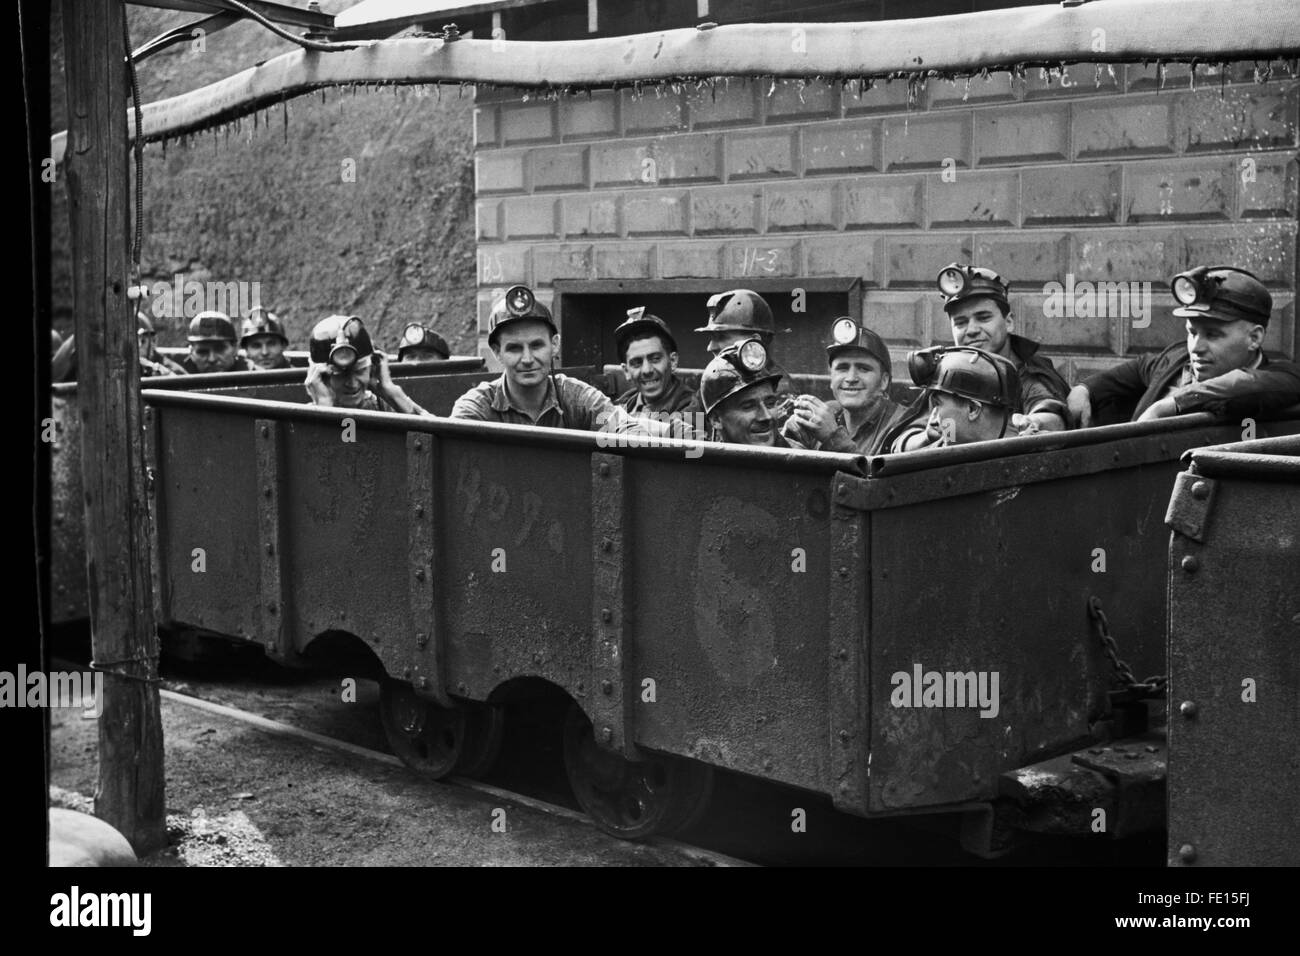 Miners in coal cars prepare to go to work in coal mine. Circa 1935. - Stock Image